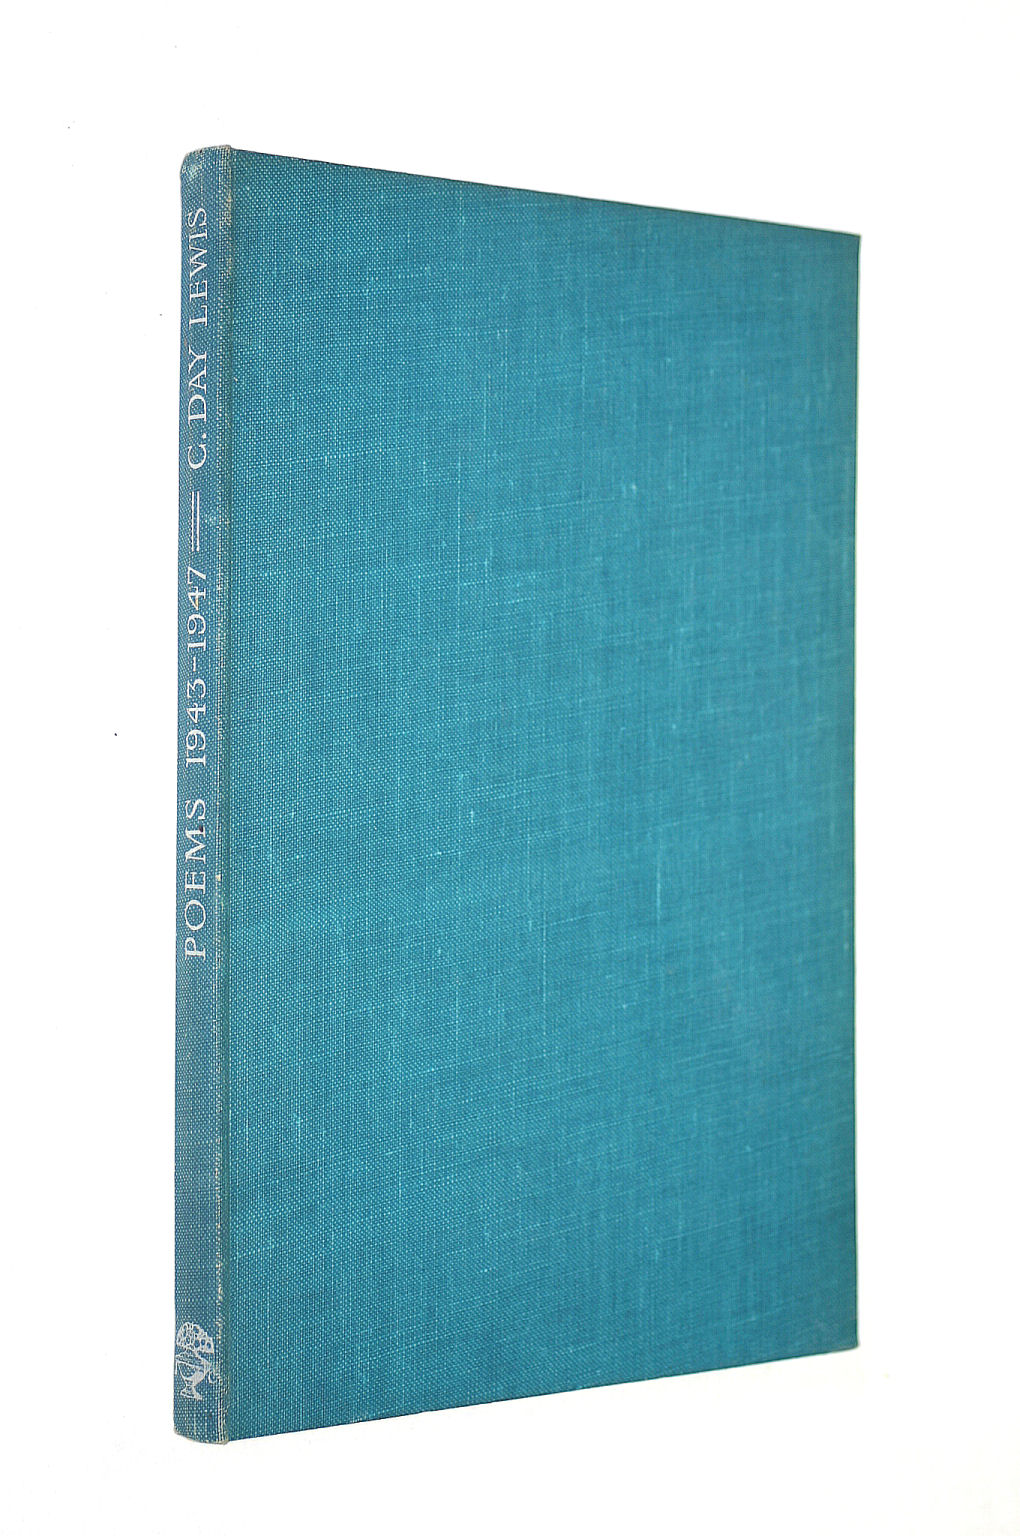 Image for Poems 1943-1947.